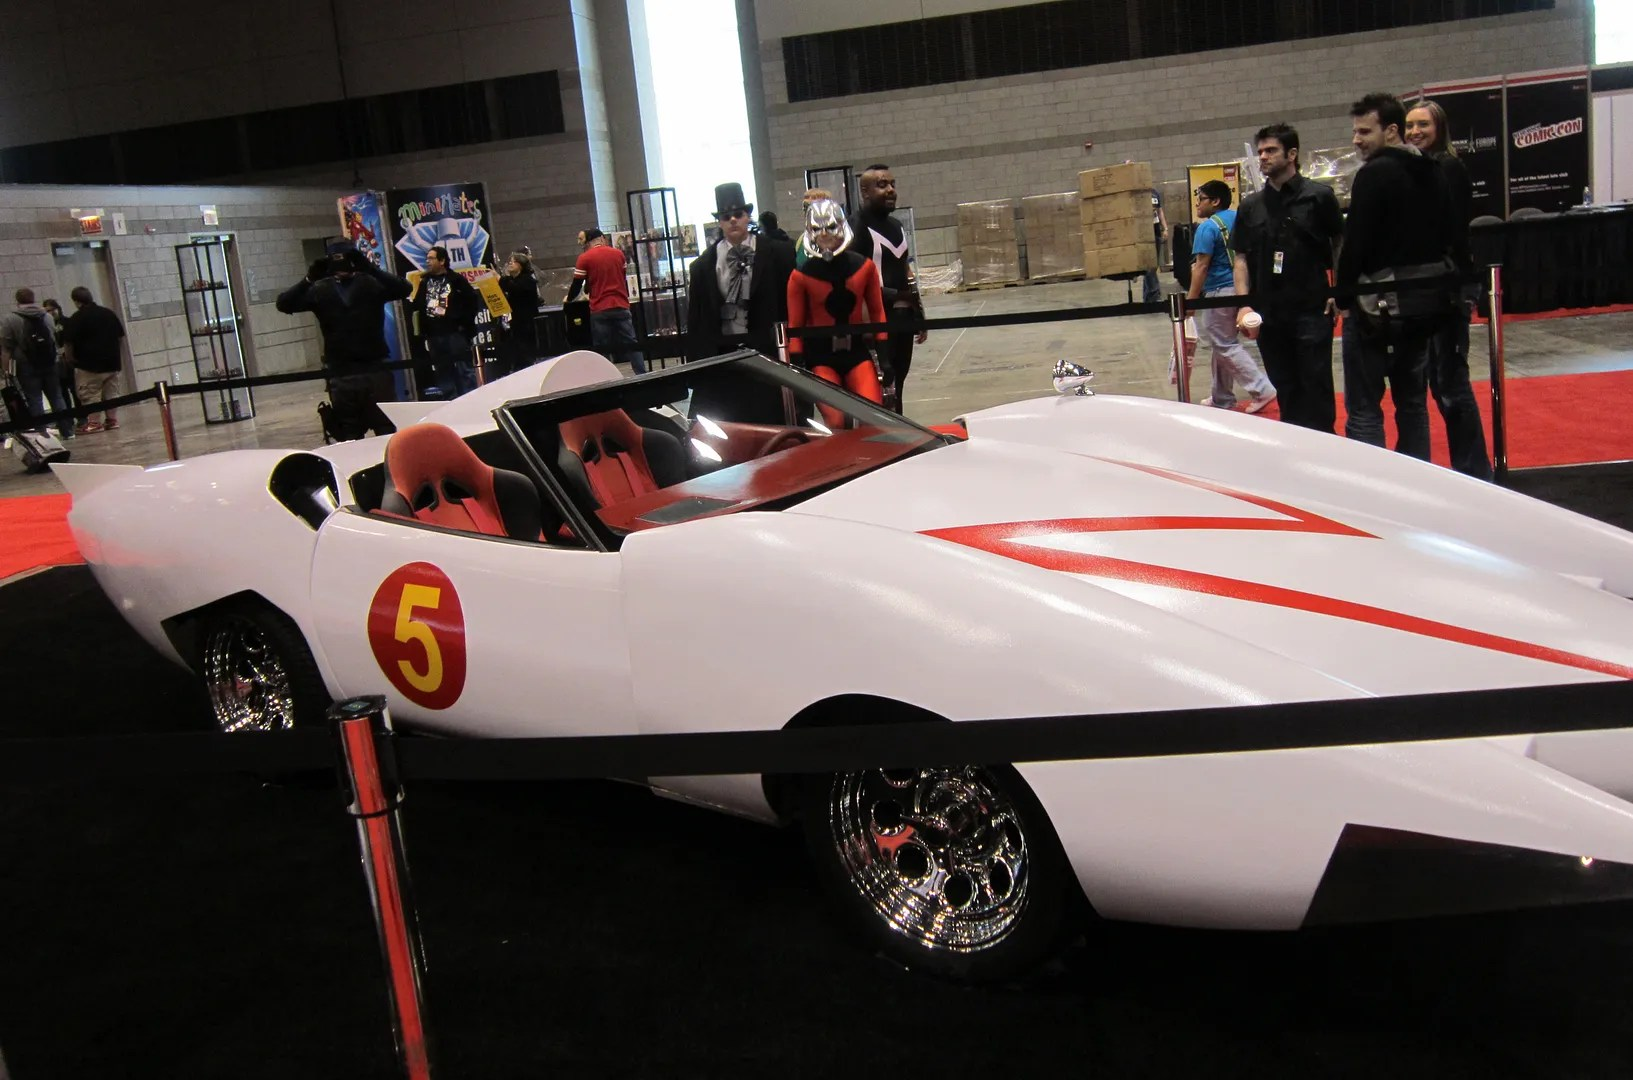 Mach 5, Speed Racer, C2E2